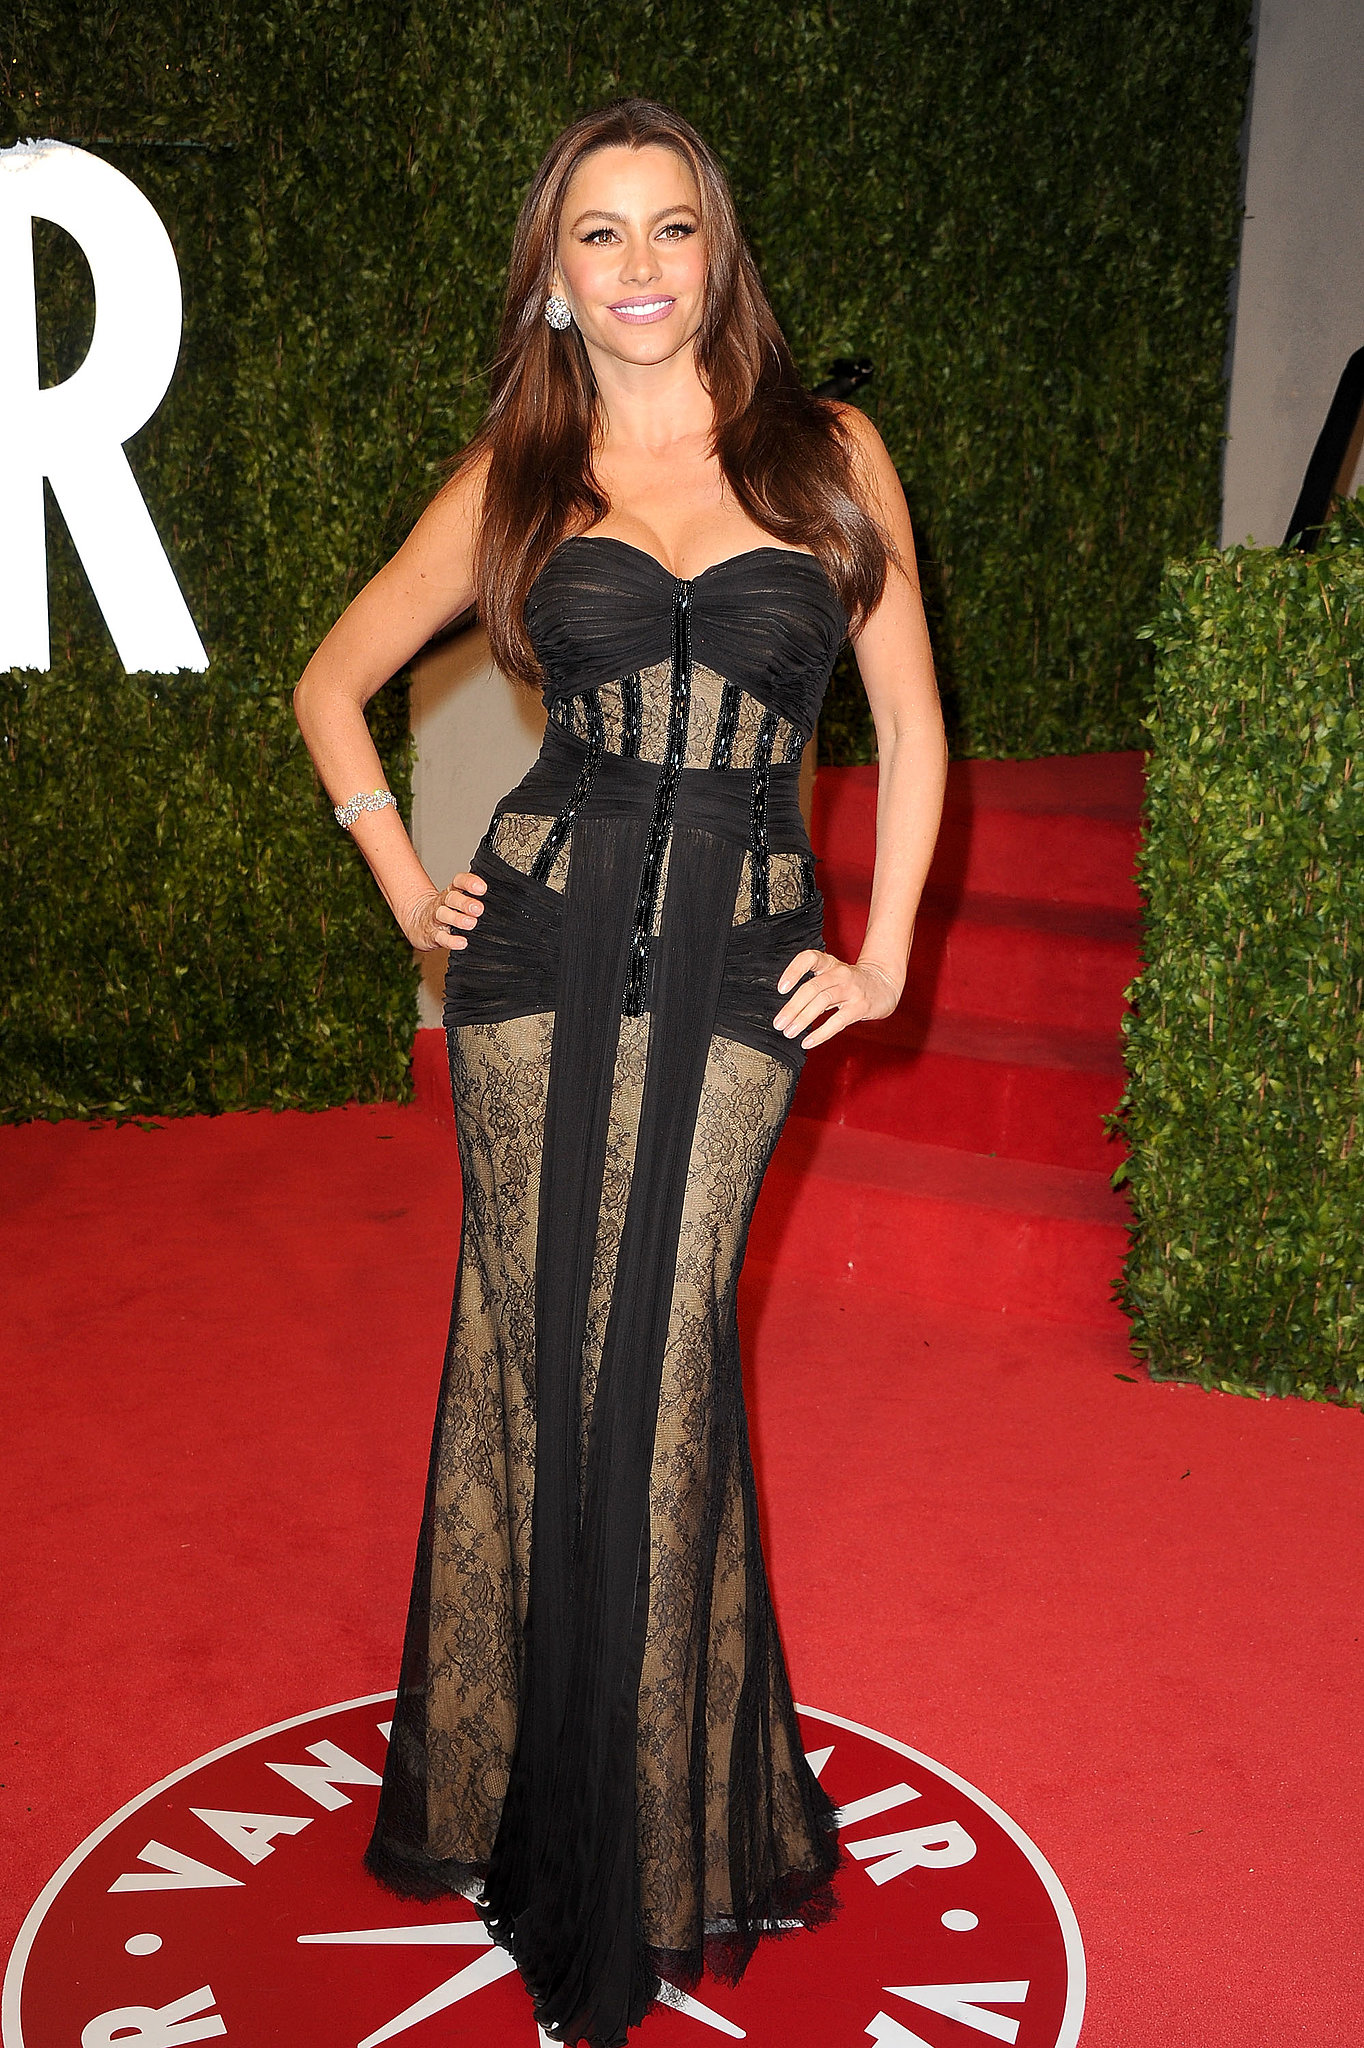 Modern Family's leading lady left little to the imagination in a sexy Zuhair Murad gown, complete with a corseted bodice and lace panels, at Vanity Fair's Oscar party in February 2011.